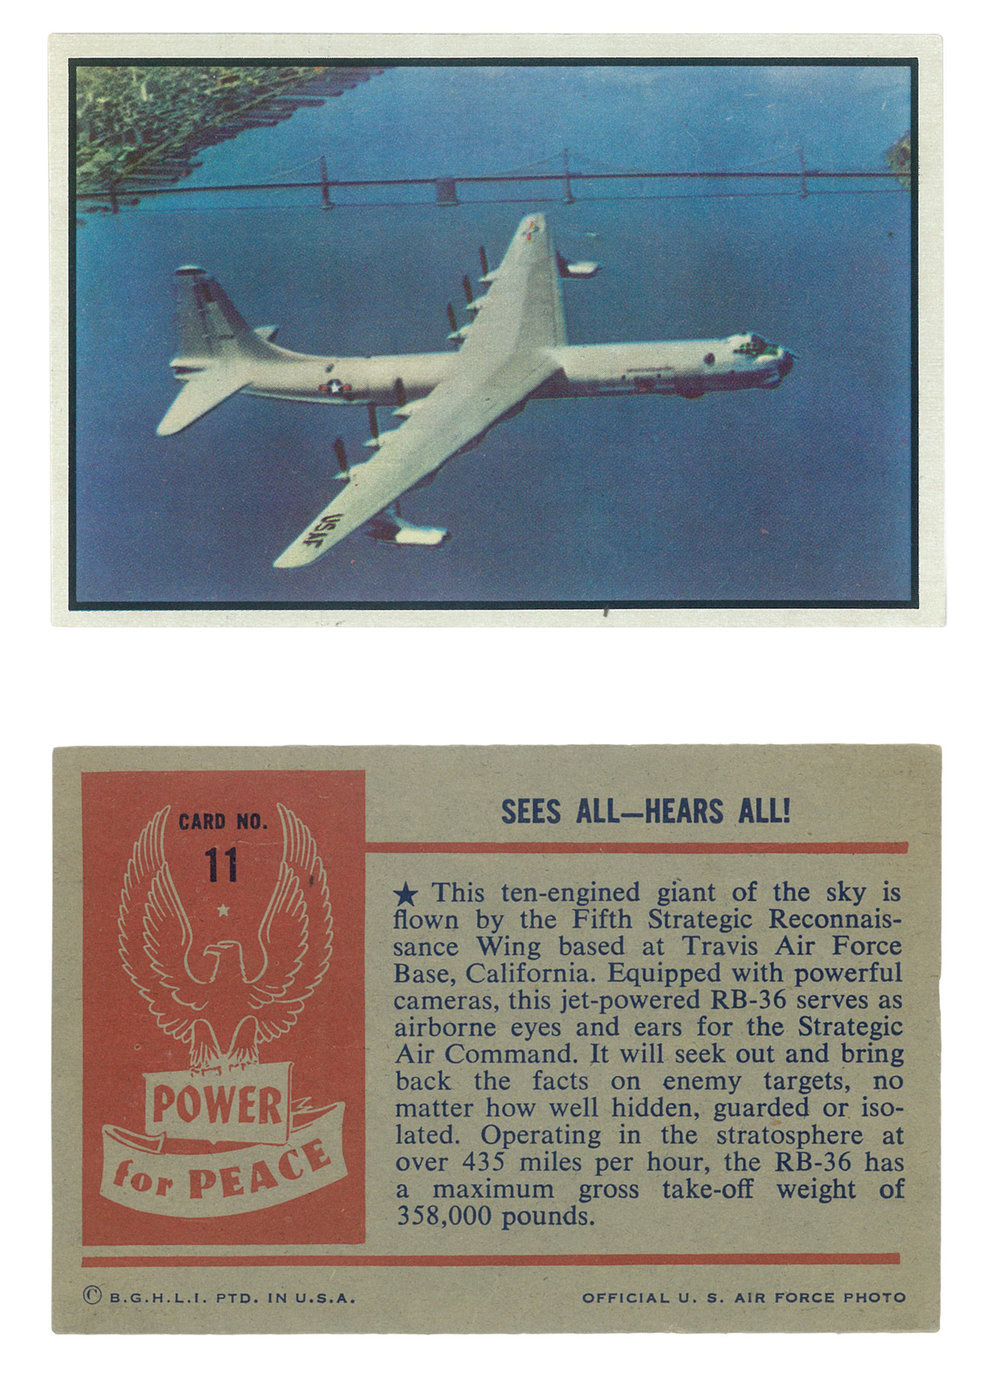 "RB-36""Sees all hears all!""  #11 Series: Power for Peace Manufacture: Bowman Card Dimensions: 3.75"" x 2.5"" USA - 1954"